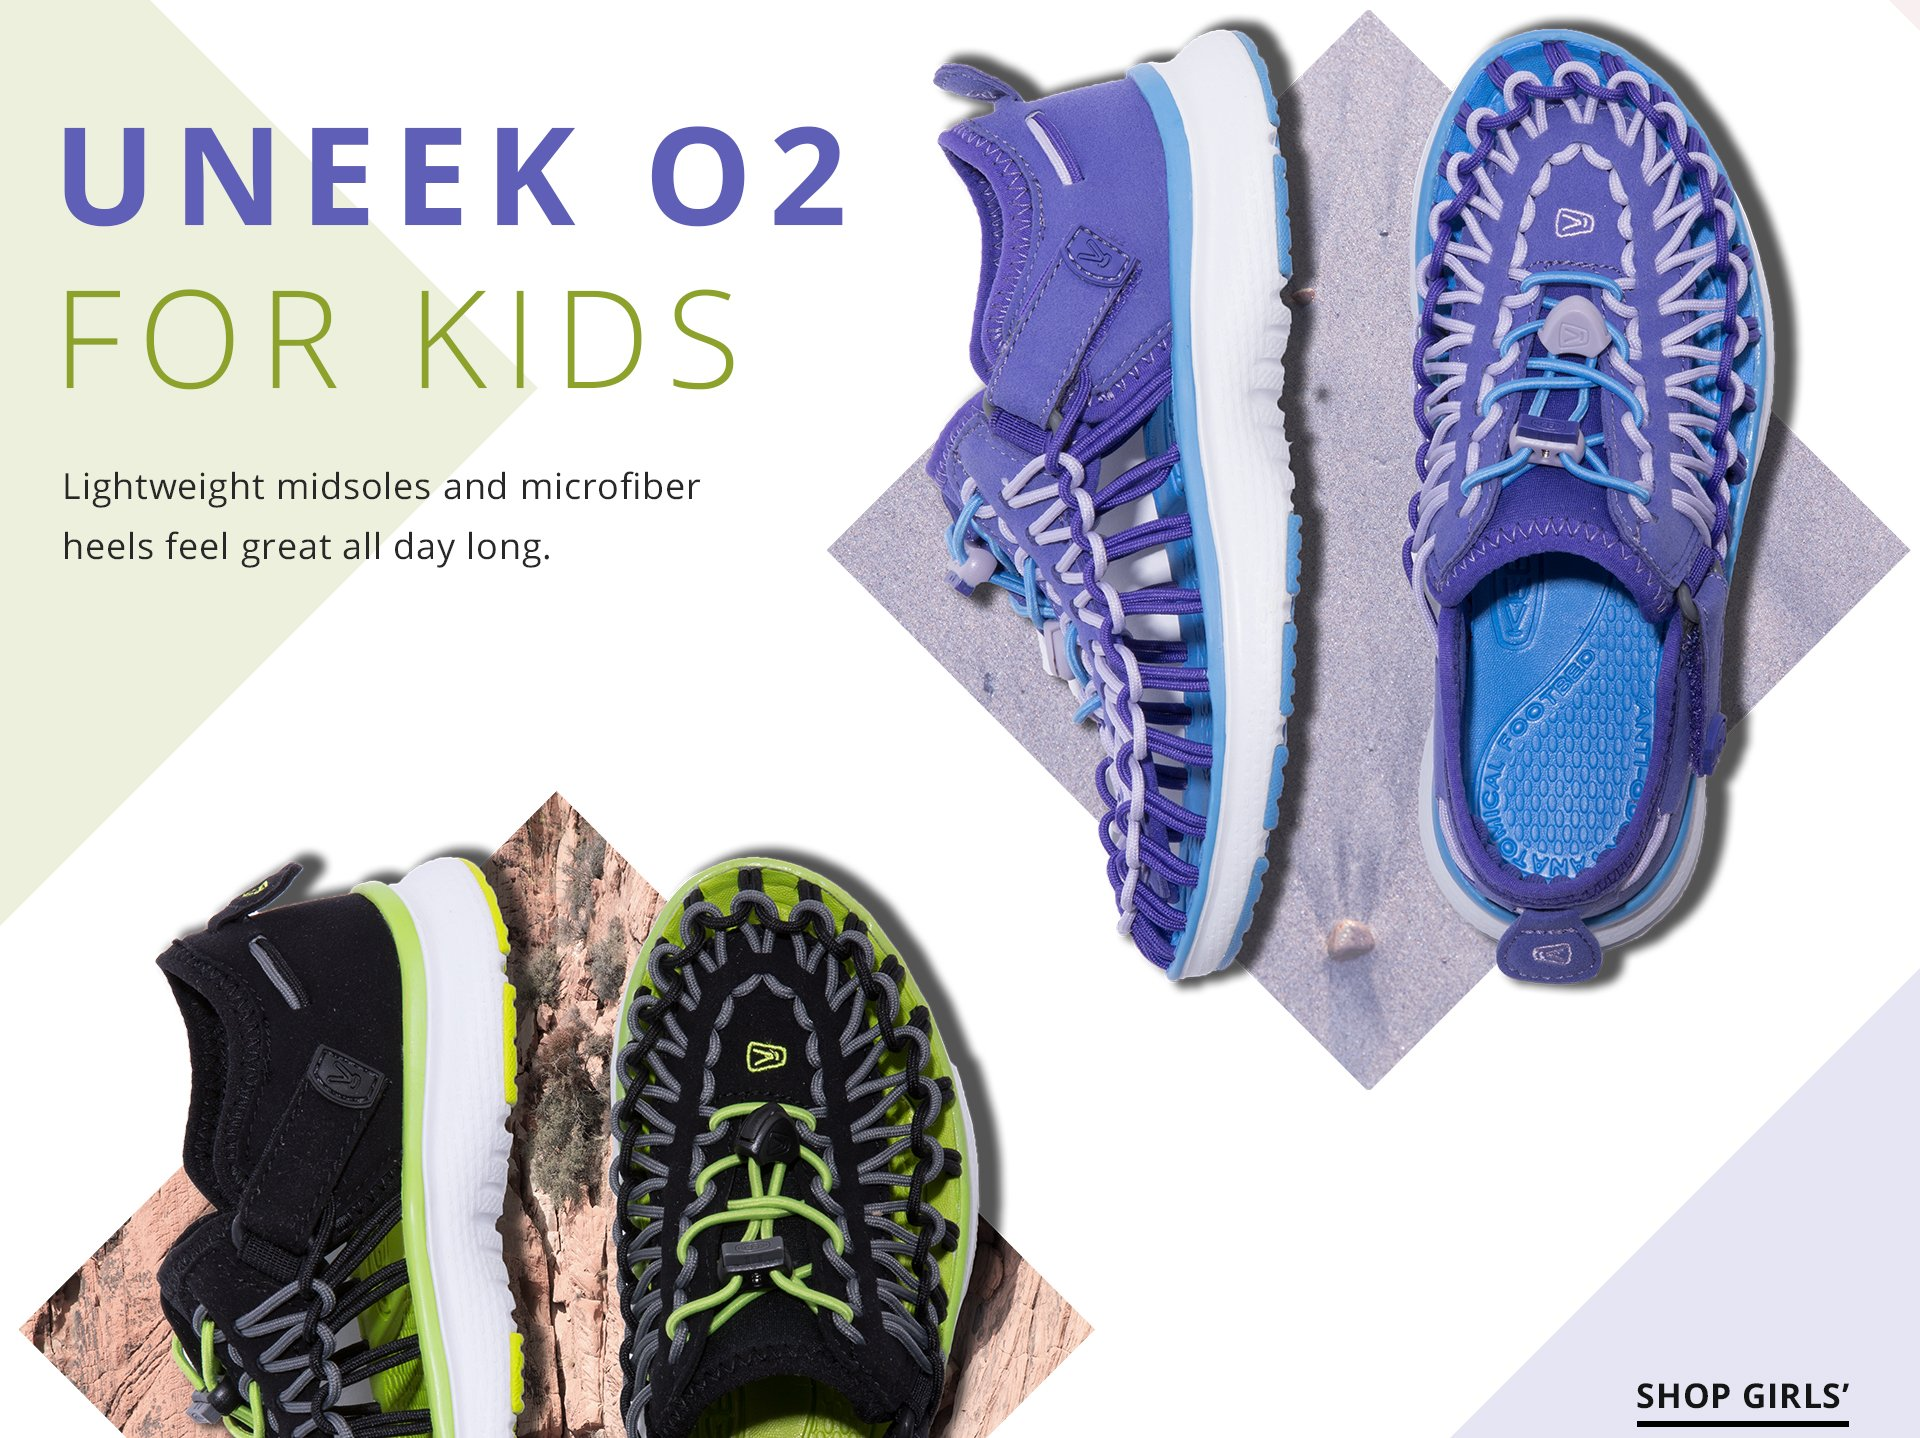 Uneek 02 for kids. Lightweight midsoles and microfiber heels feel great all day long.